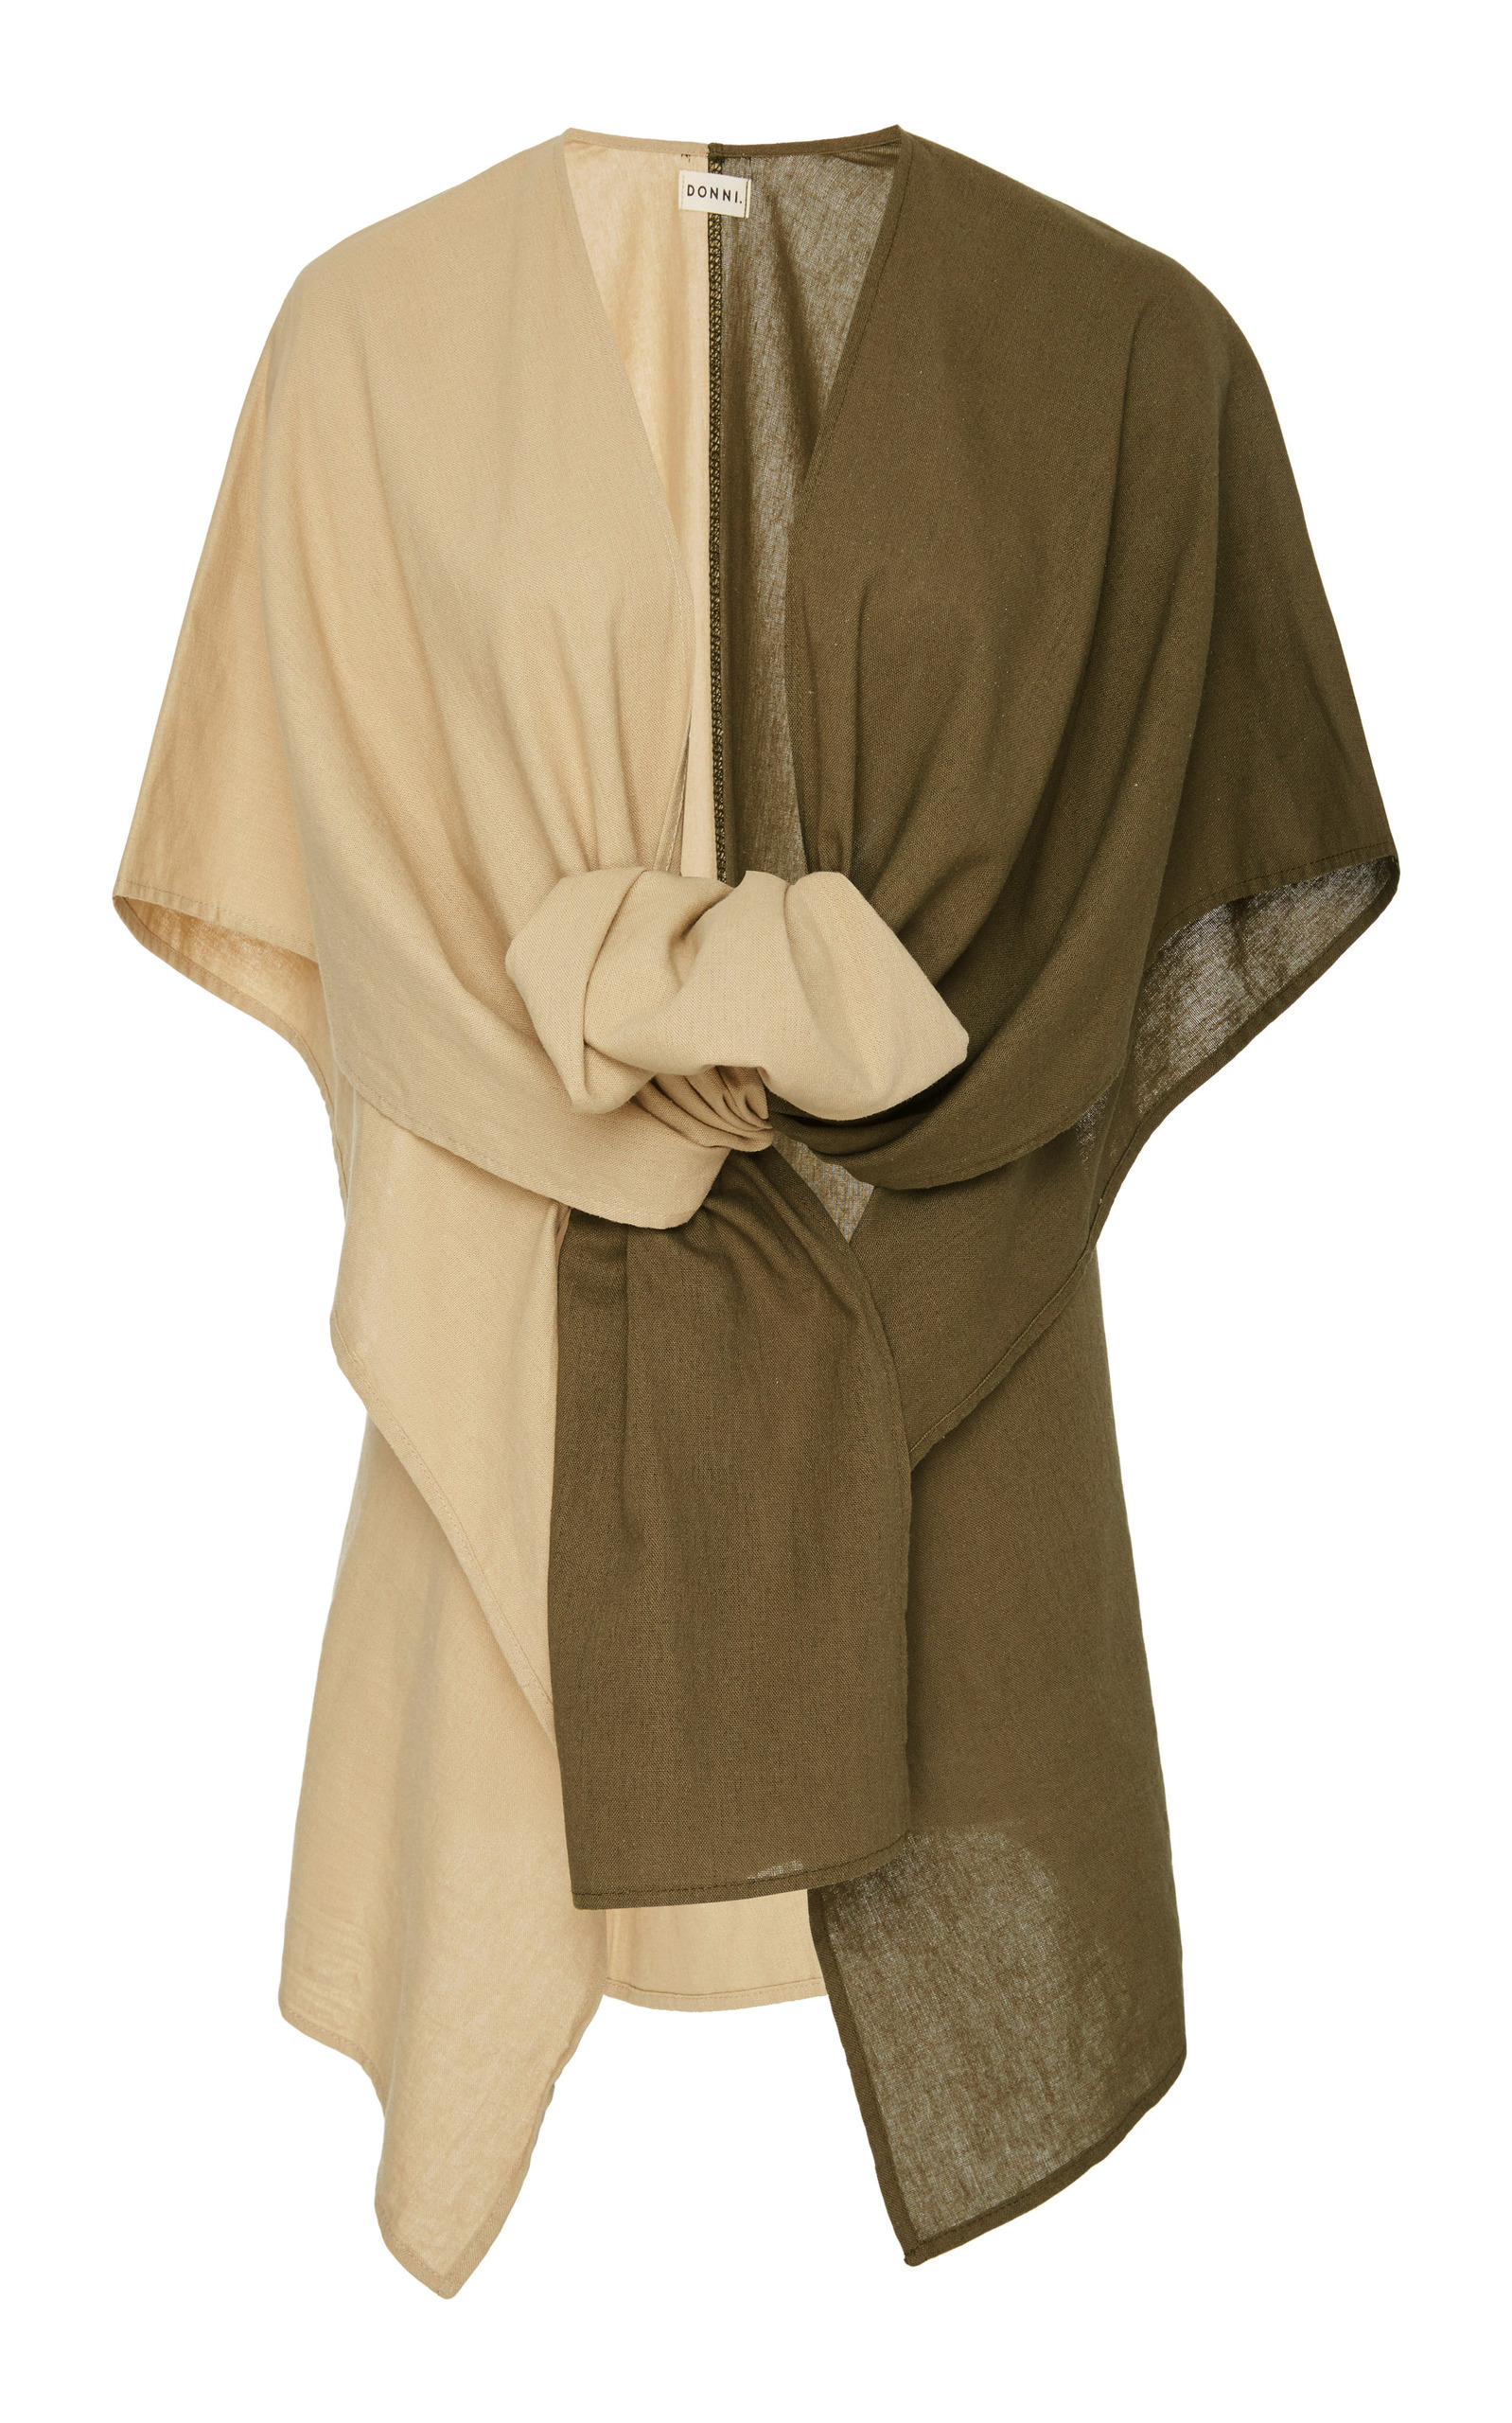 DONNI CHARM HART TWO-TONE LINEN-BLEND SHAWL